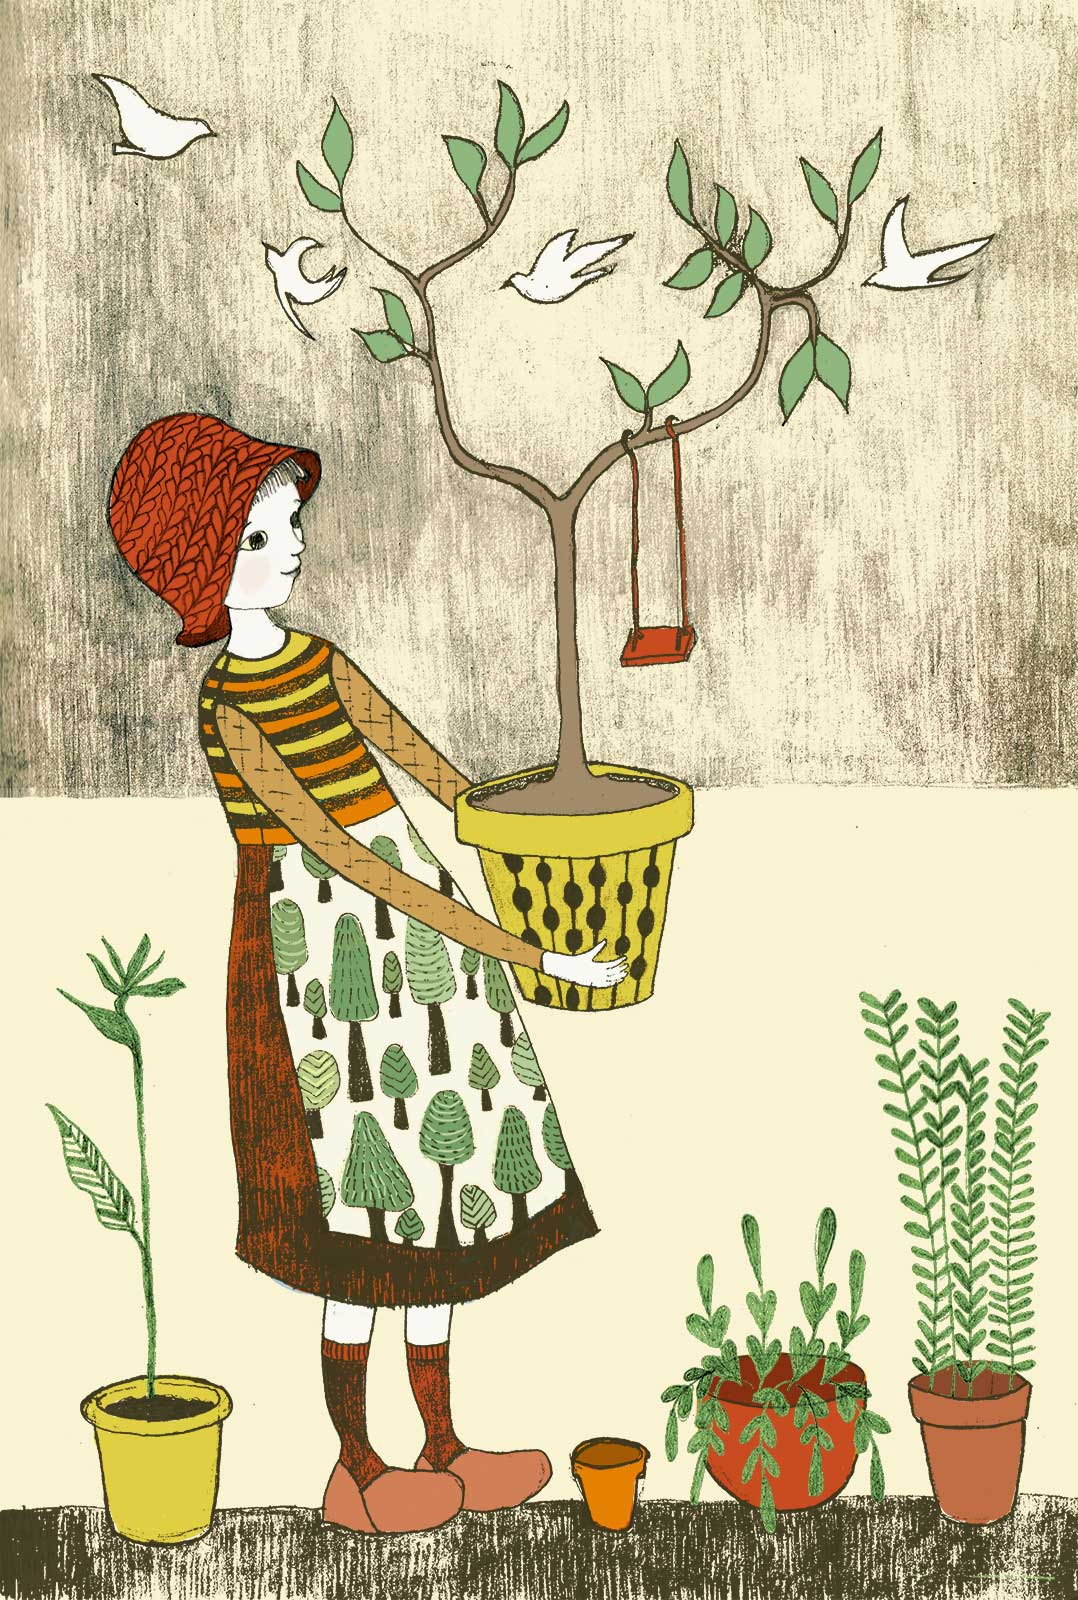 And here she is - Tending to the Garden. Can't wait to make more :)